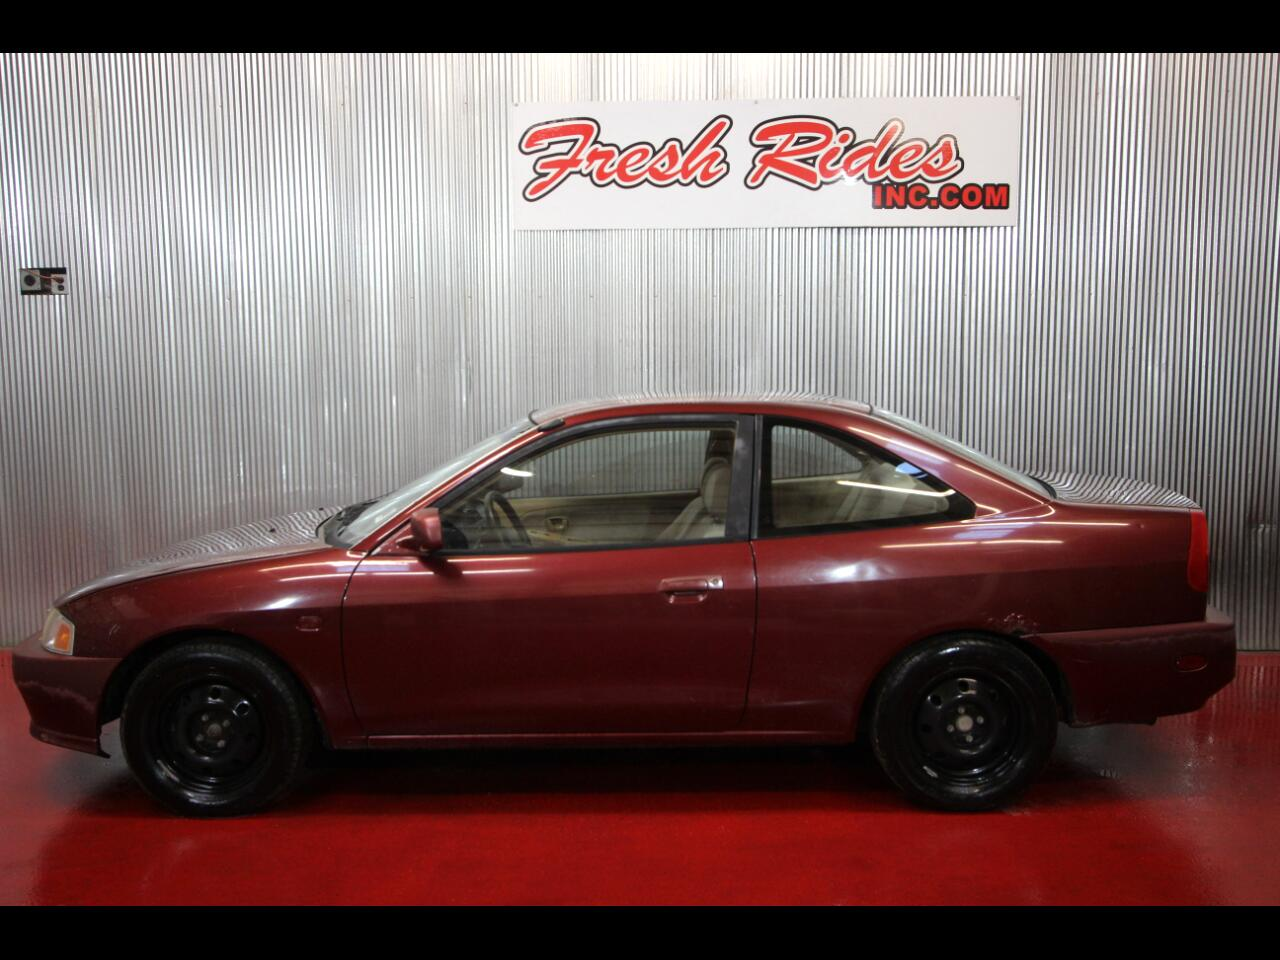 Used 2000 Mitsubishi Mirage 2dr Cpe LS 1.8L Manual For